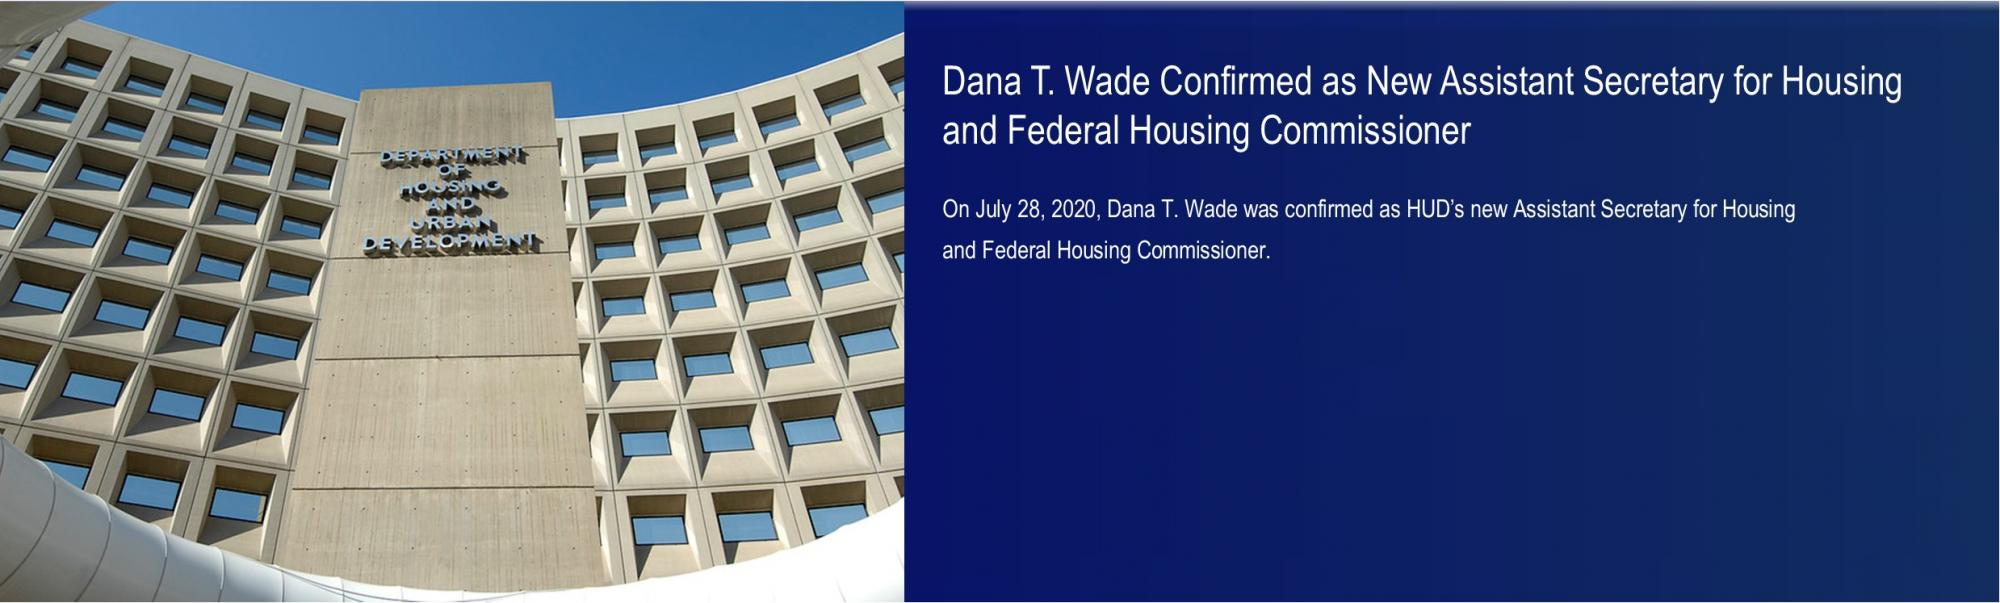 [Dana T. Wade Confirmed as New Assistant Secretary for Housing and Federal Housing Commissioner].